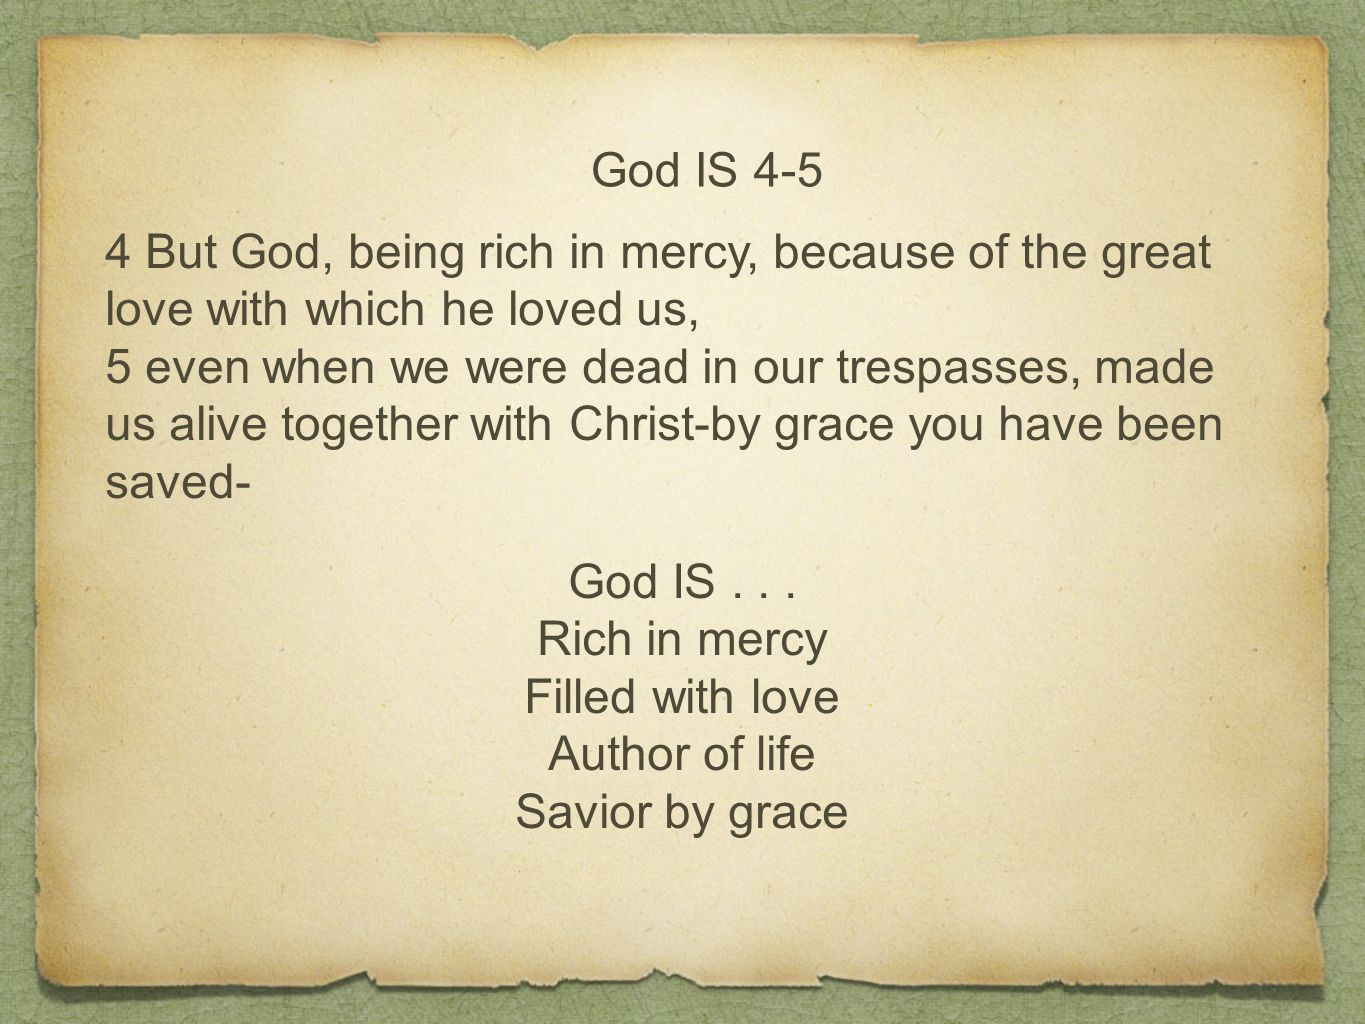 God IS 4-5 4 But God, being rich in mercy, because of the great love with which he loved us, 5 even when we were dead in our trespasses, made us alive